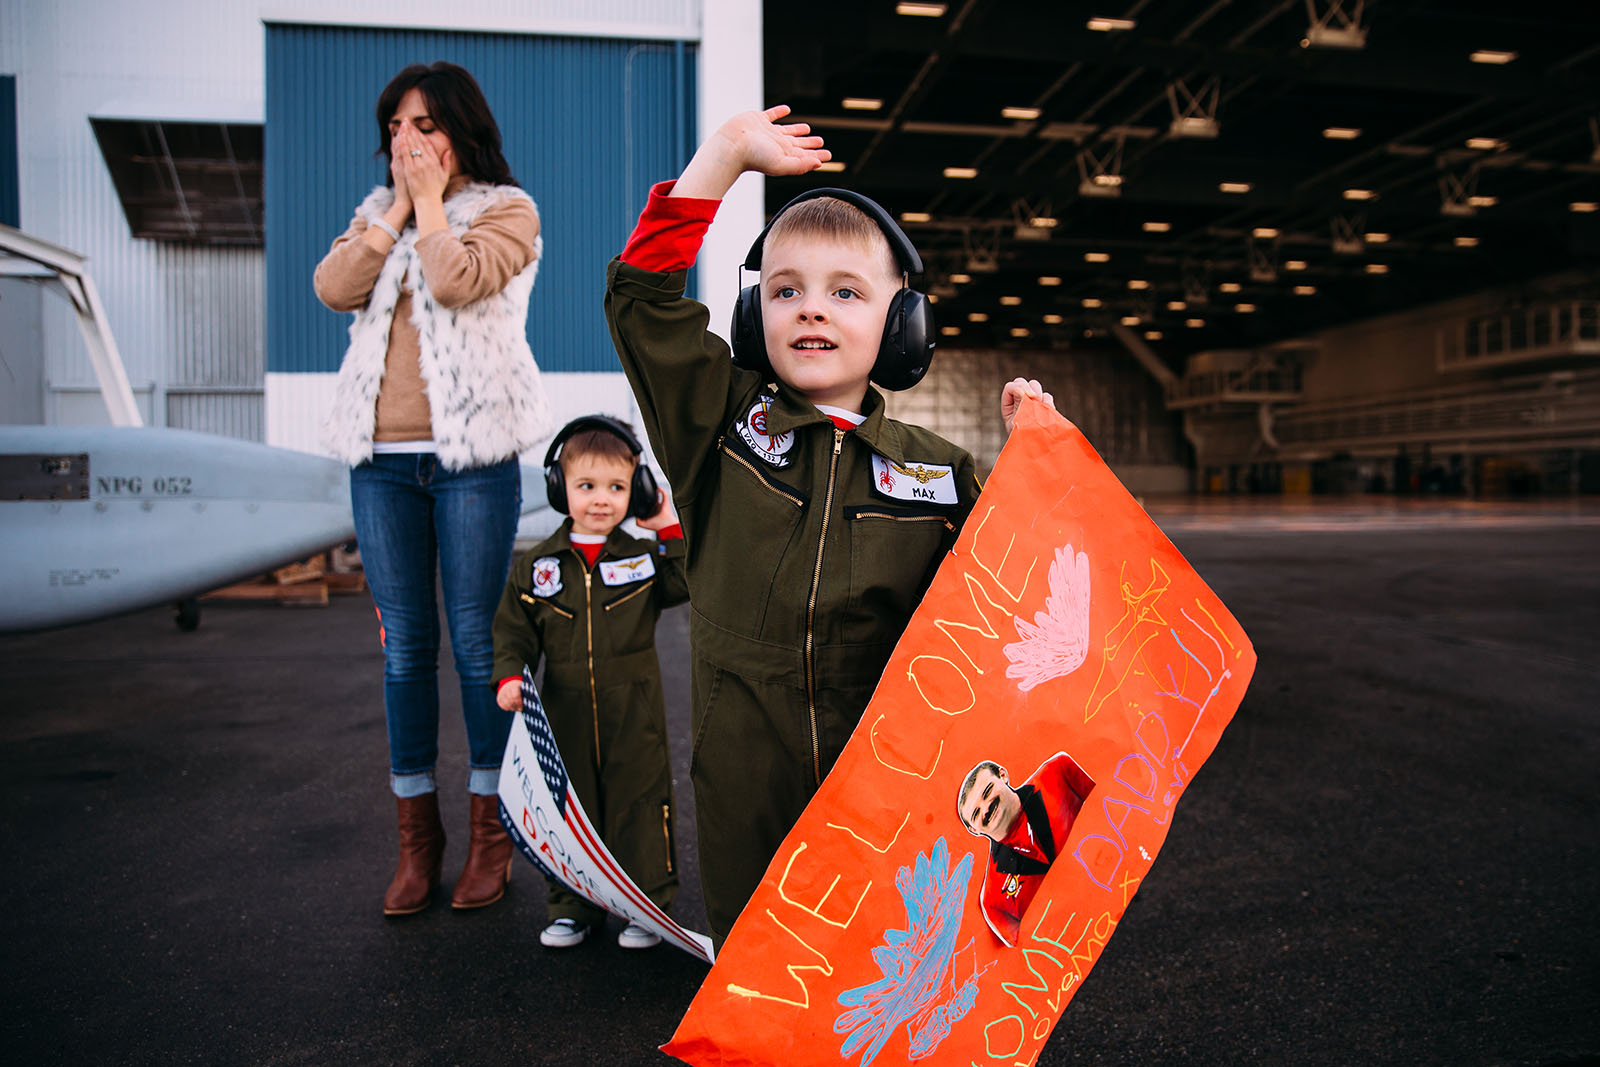 A little boy waits for his father at a military homecoming